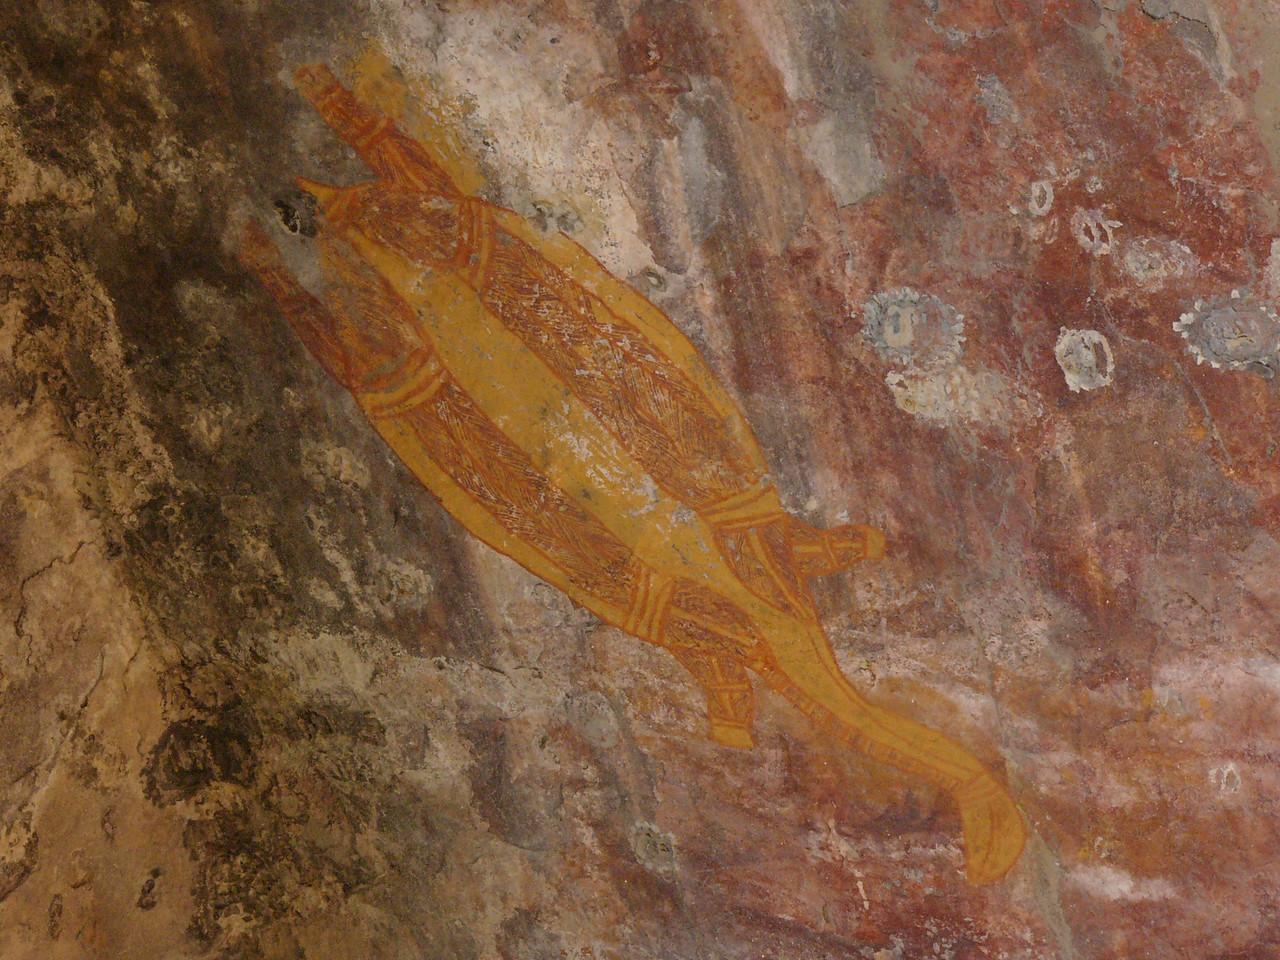 Aboriginal rock painting of a long-necked turtle at Ubirr, Kakadu National Park.